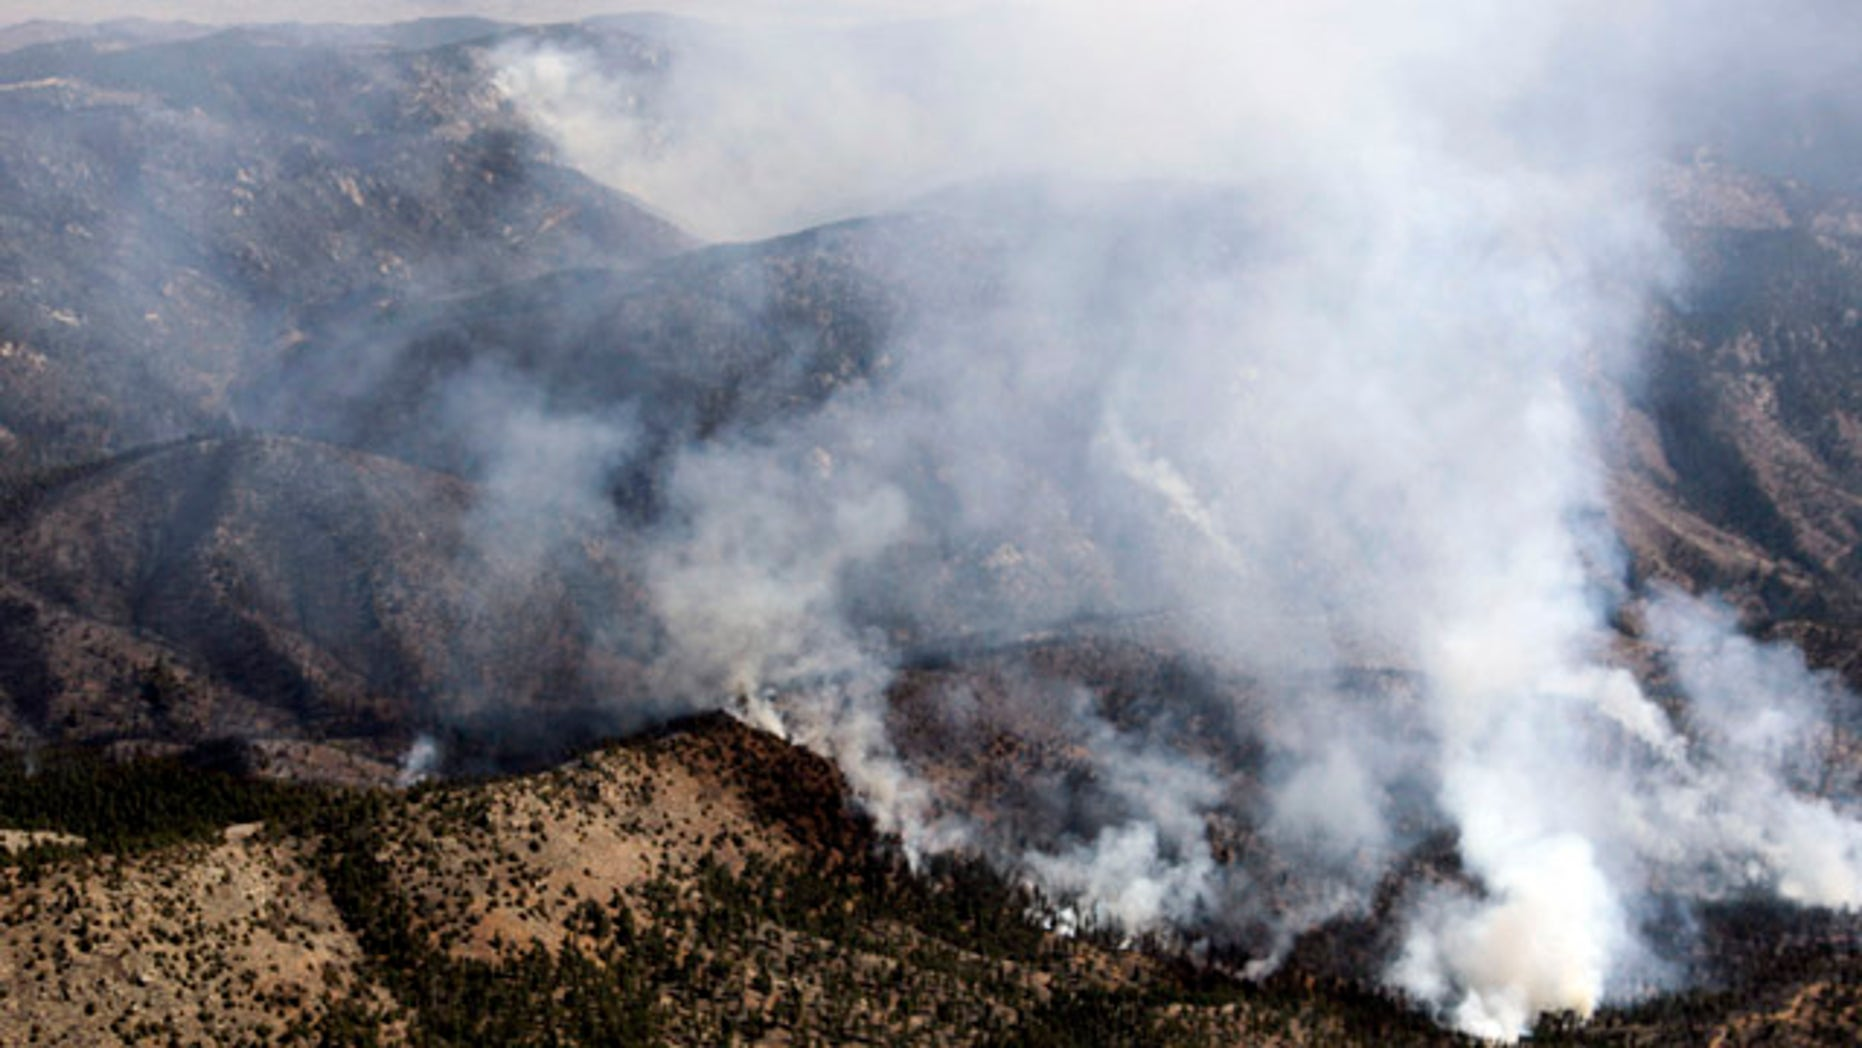 March 27: Smoke rises from the Lower North Fork Wildfire as it burns near the foothills community of Conifer, Colo